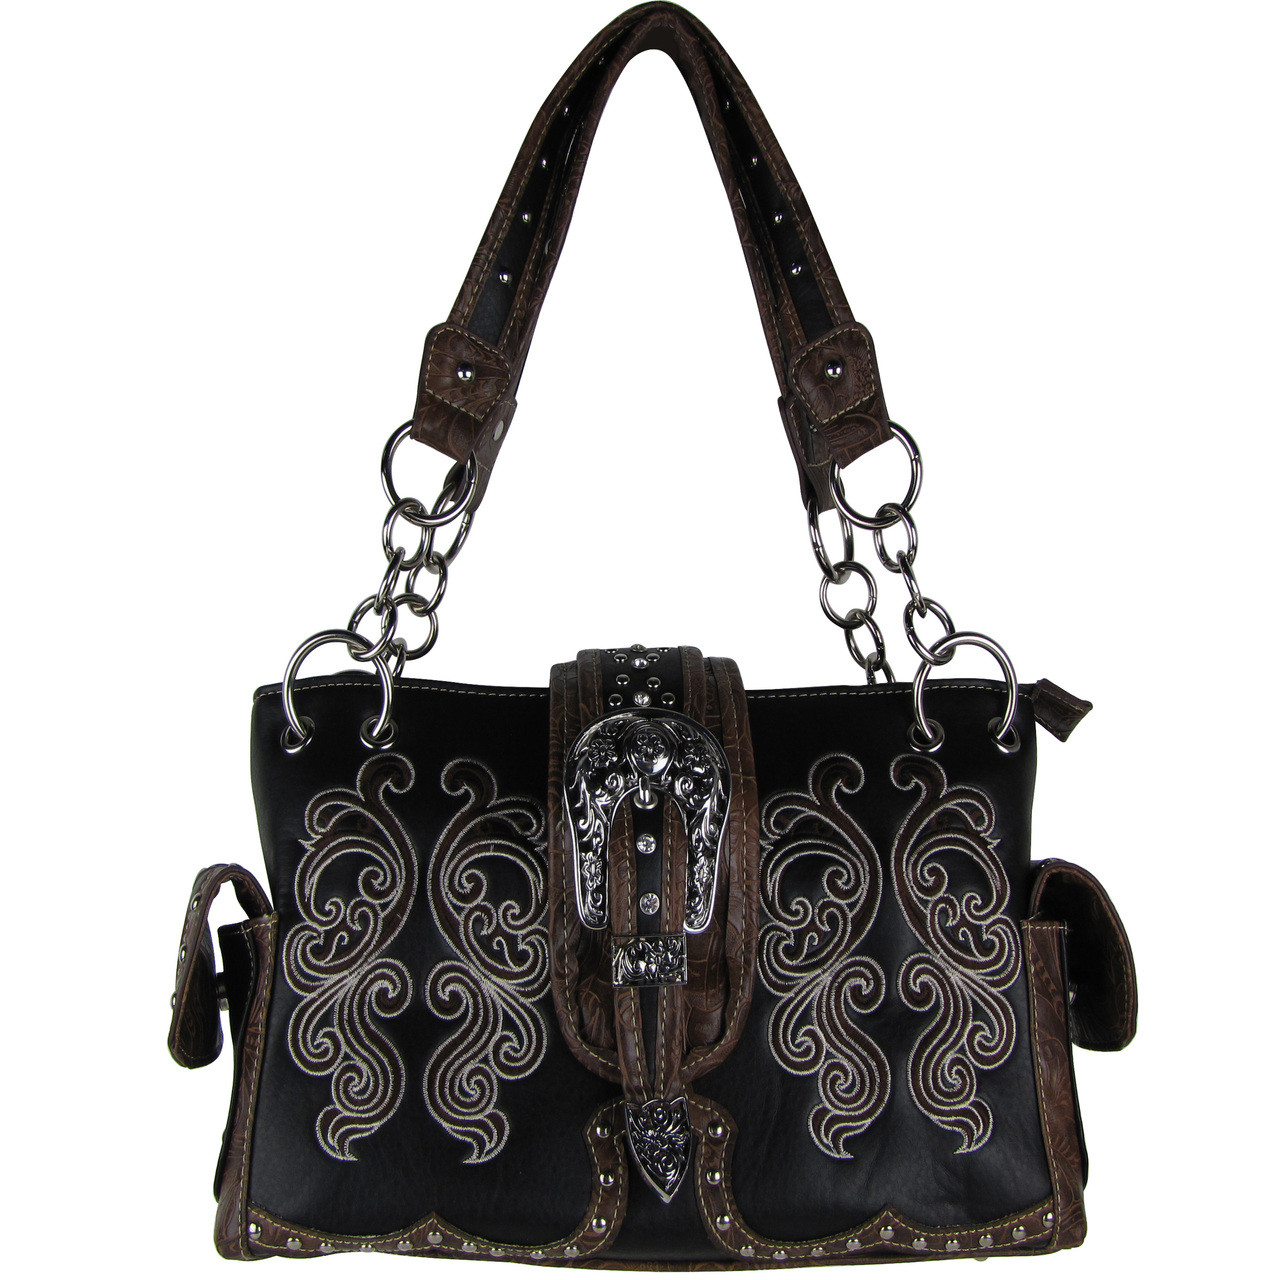 BLACK WESTERN BUCKLE LOOK SHOULDER HANDBAG HB1-39W62BLK